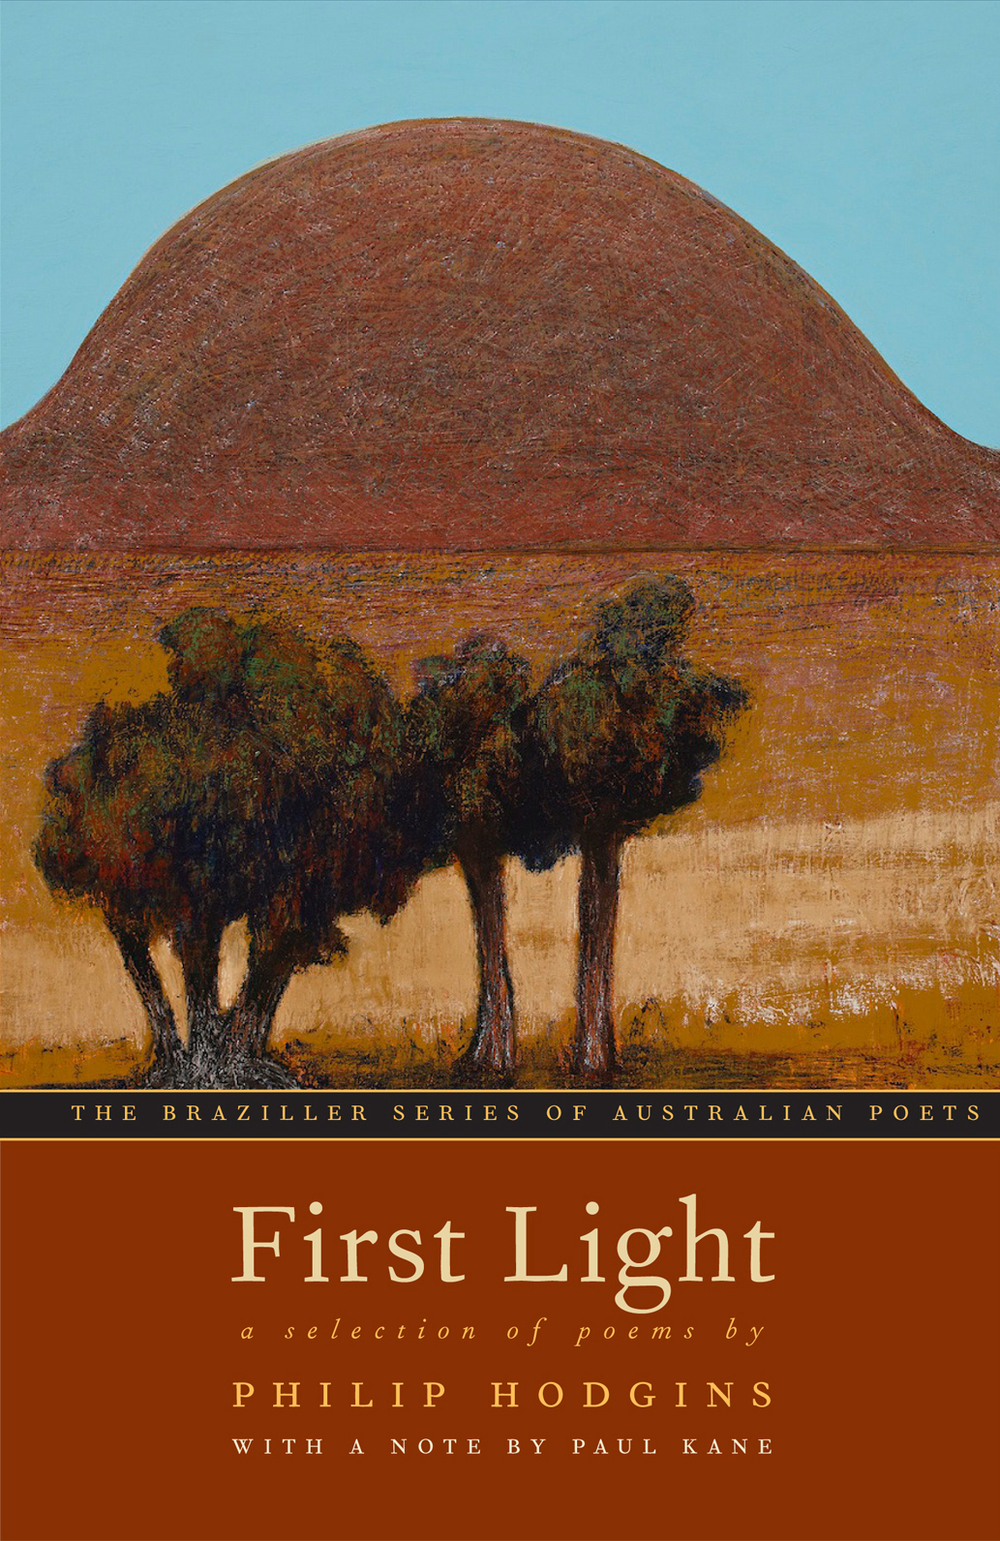 FIRSTLIGHT_Cover.jpg